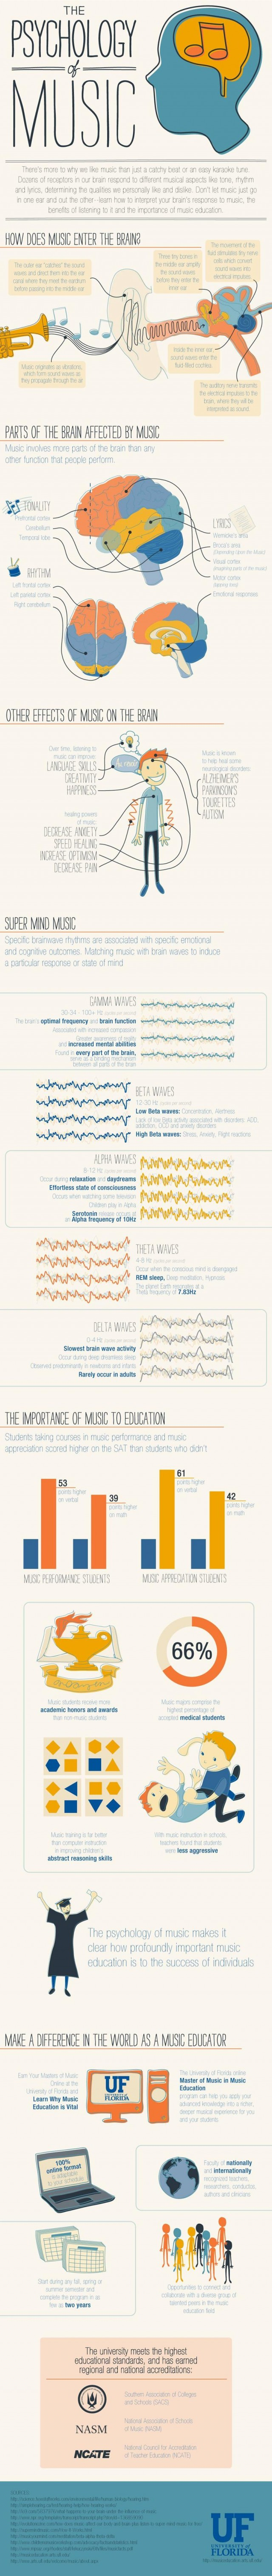 the-psychology-of-music_510e25927e035-640x6055